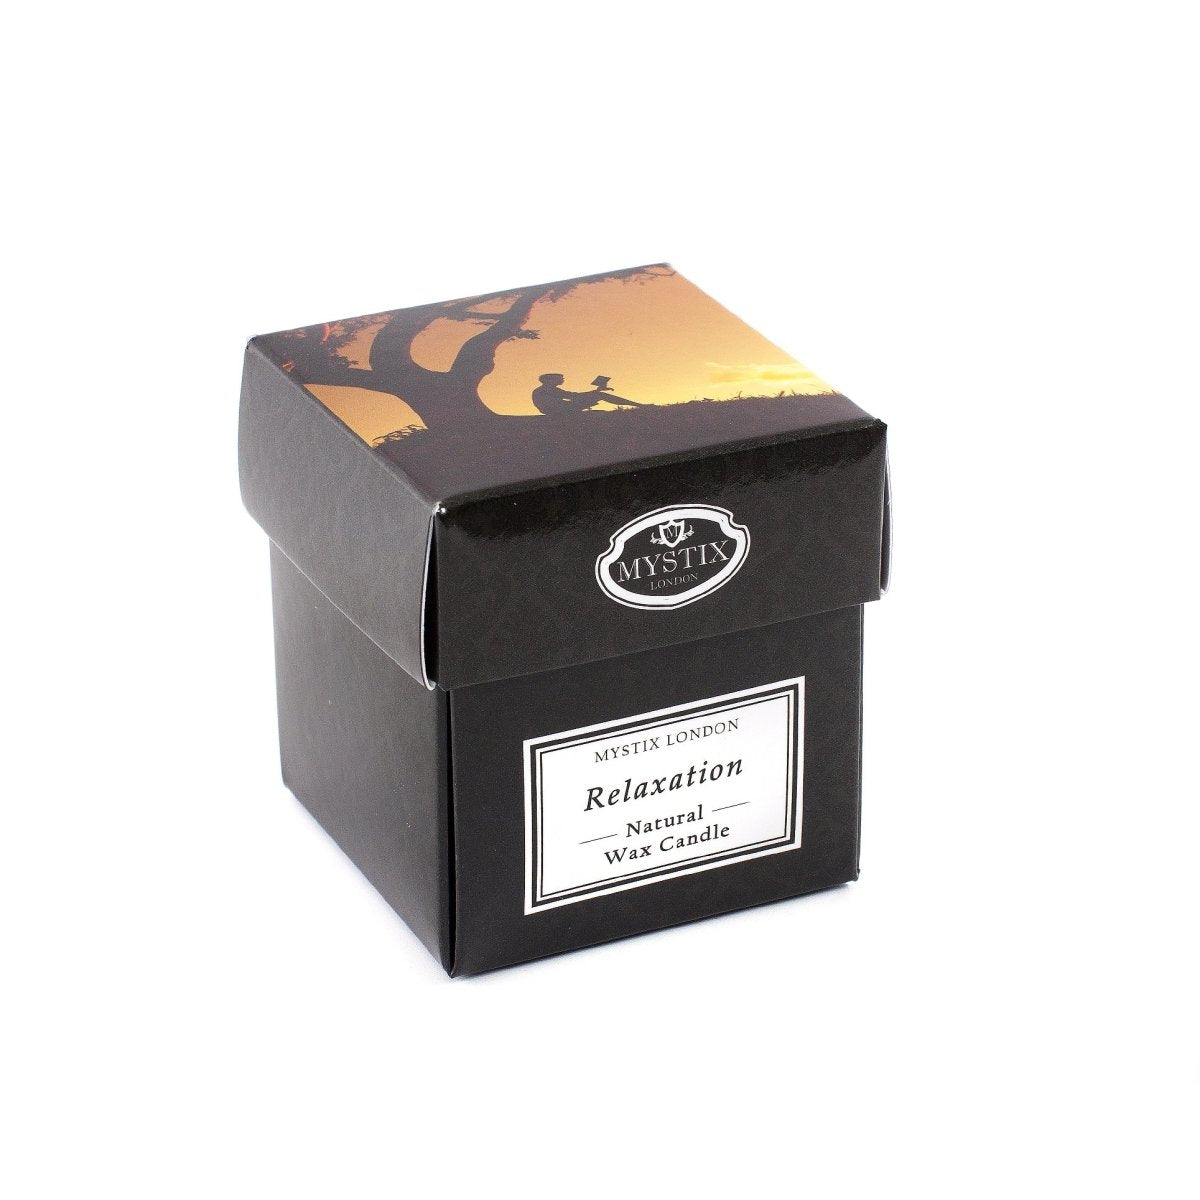 Relaxation Scented Candle - Mystic Moments UK